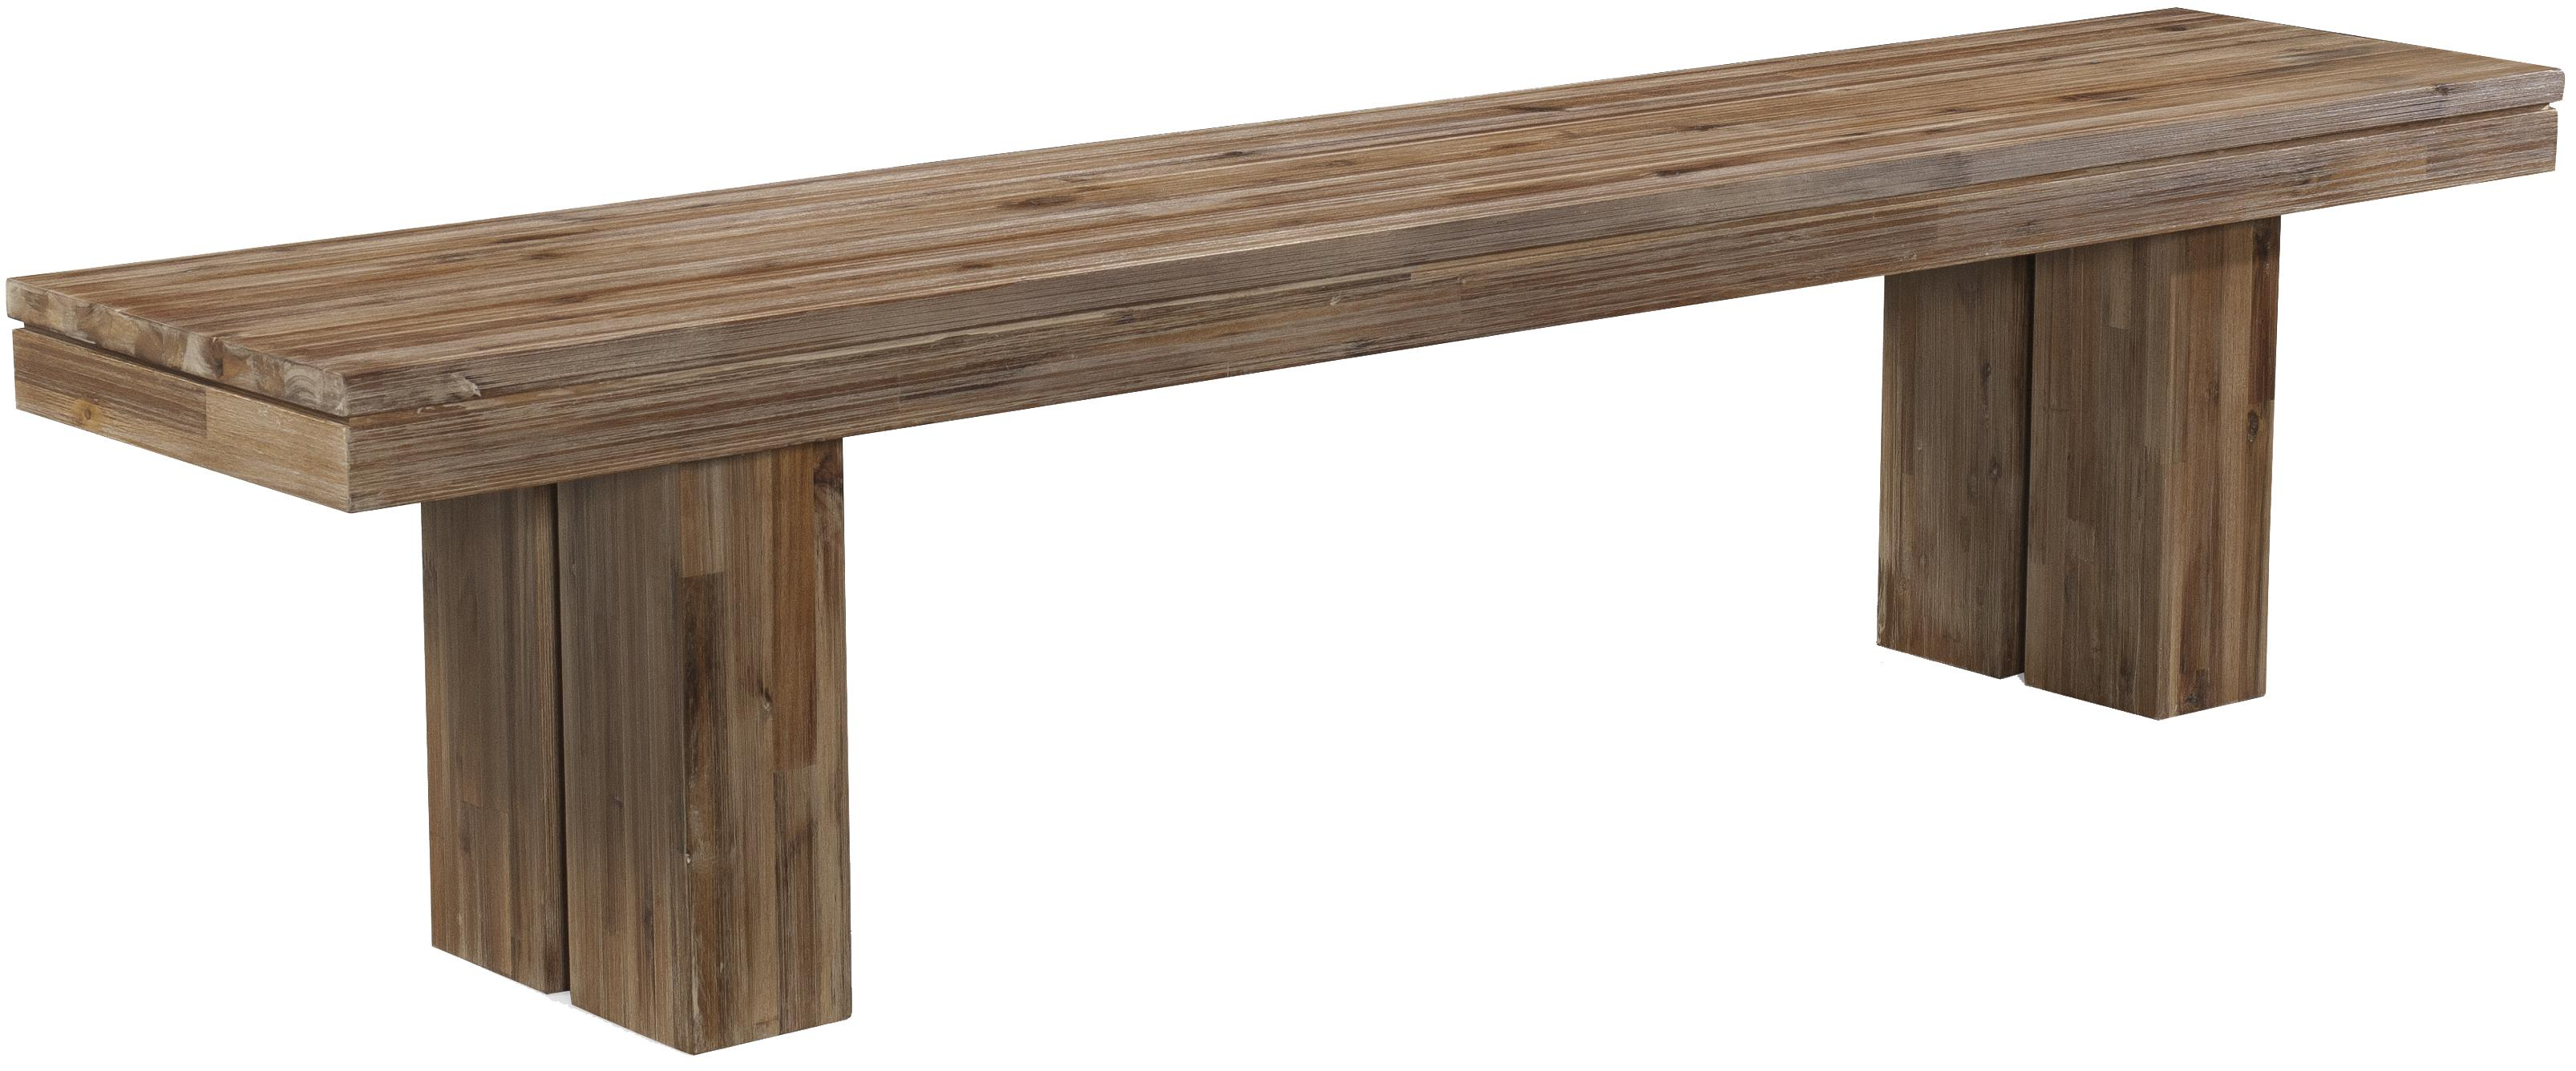 dining good wood room bench anadolukardiyolderg table looking and fancy modern wooden